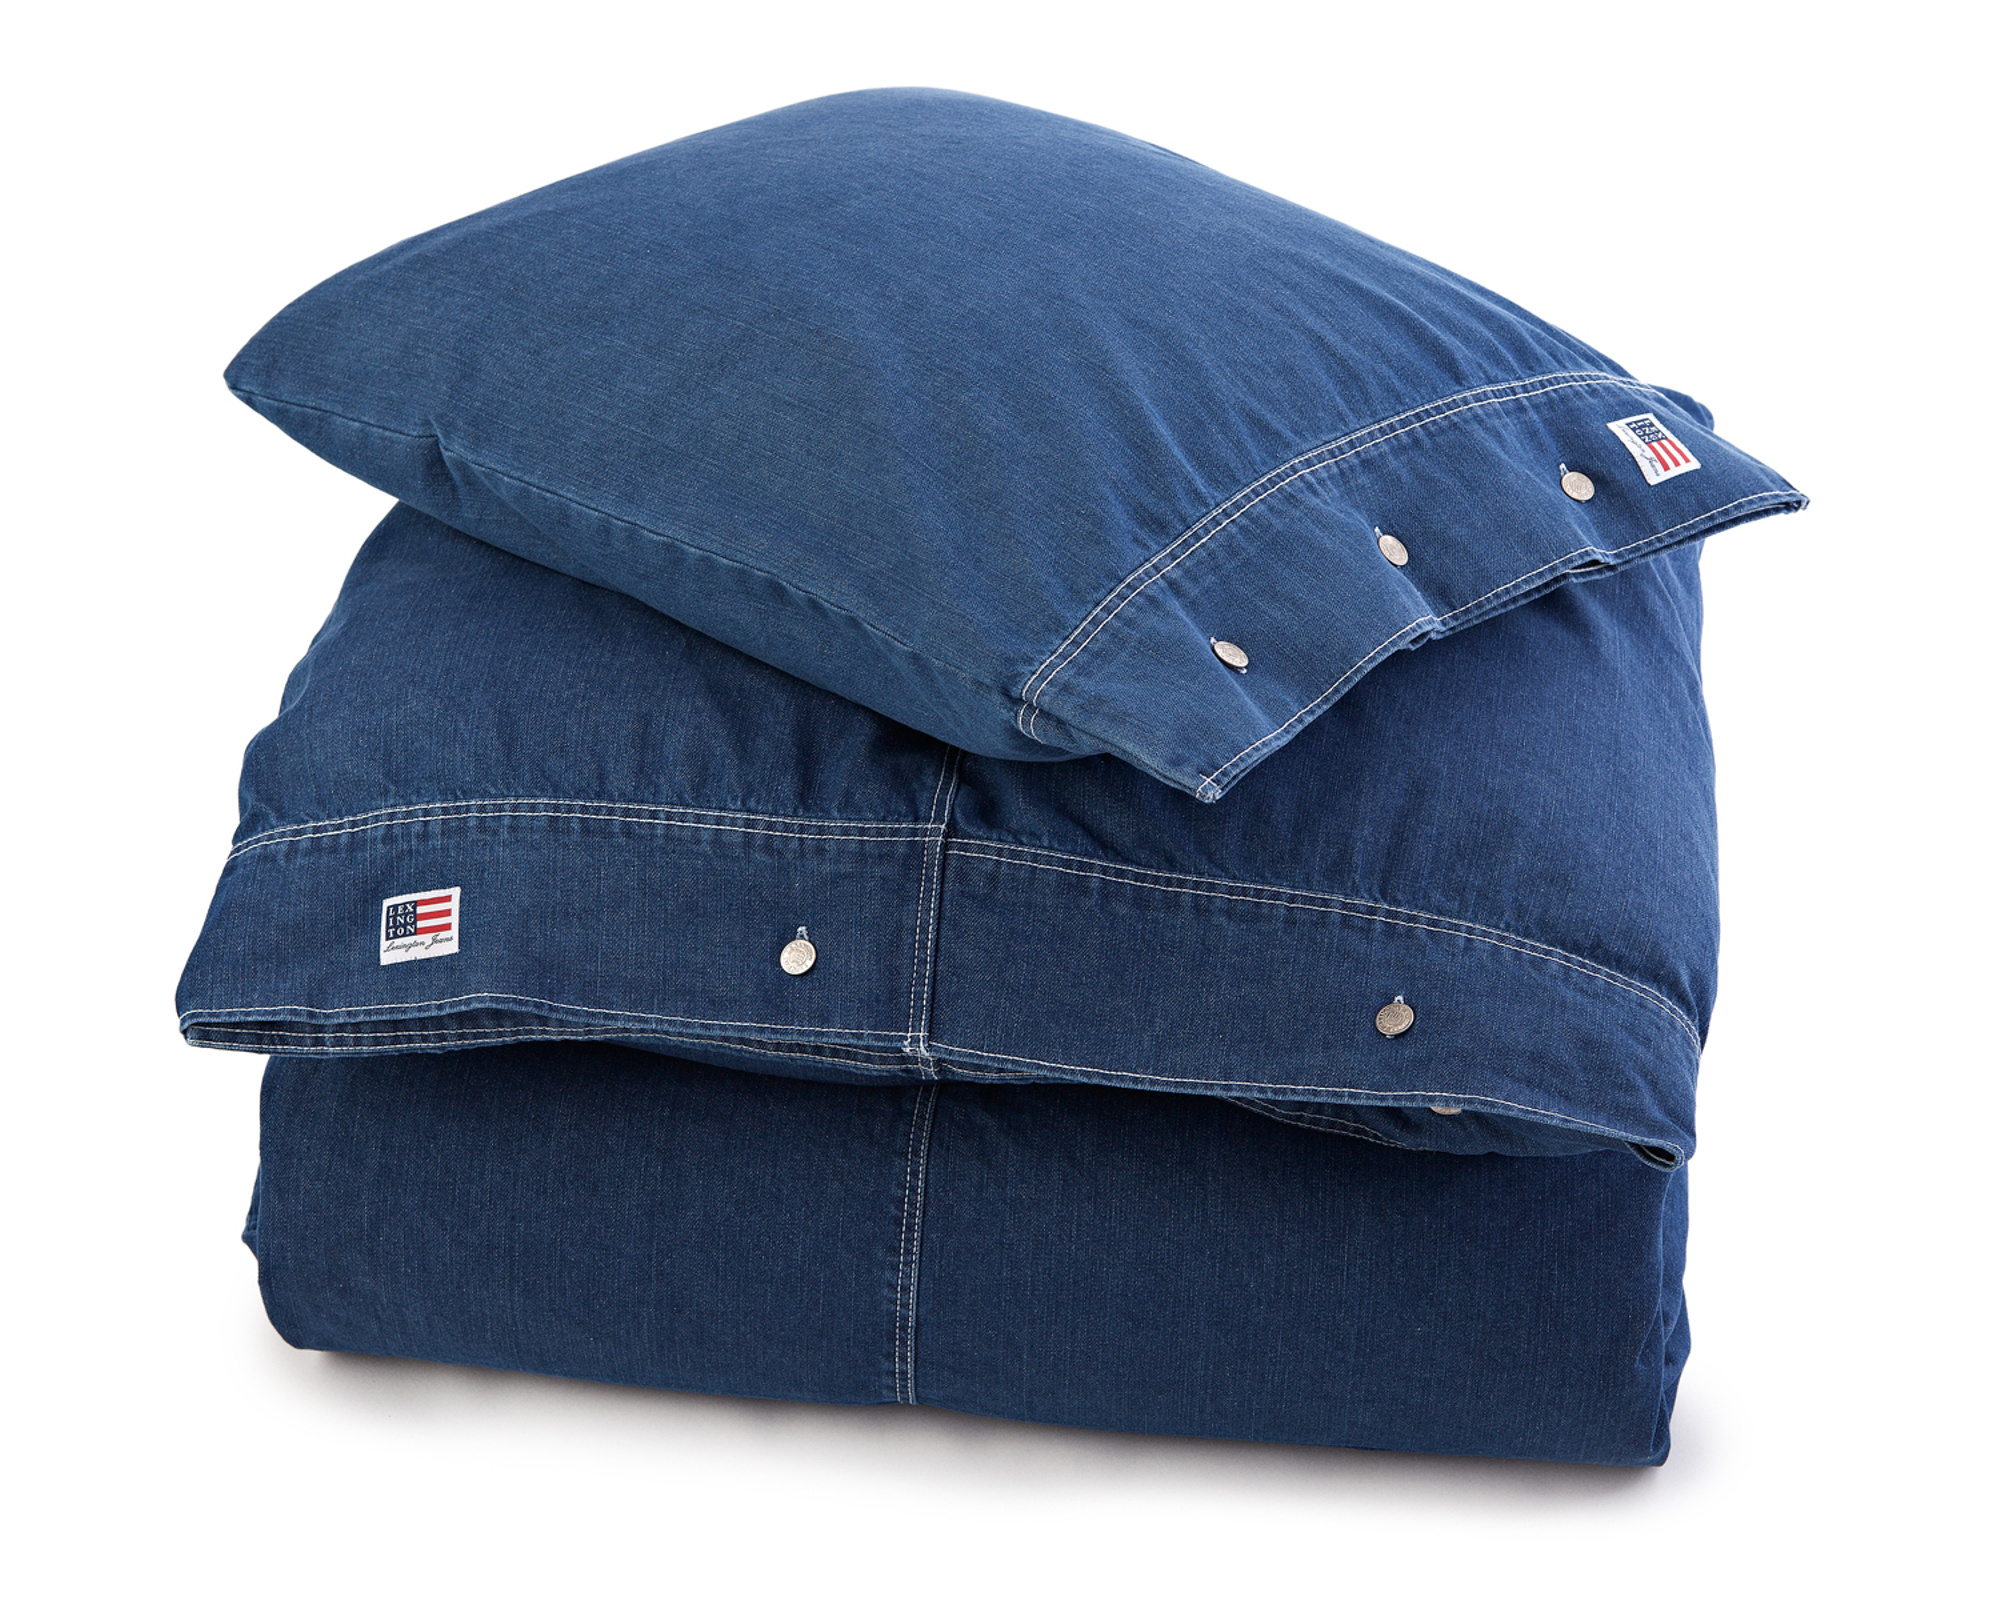 Authentic Jeans Duvet